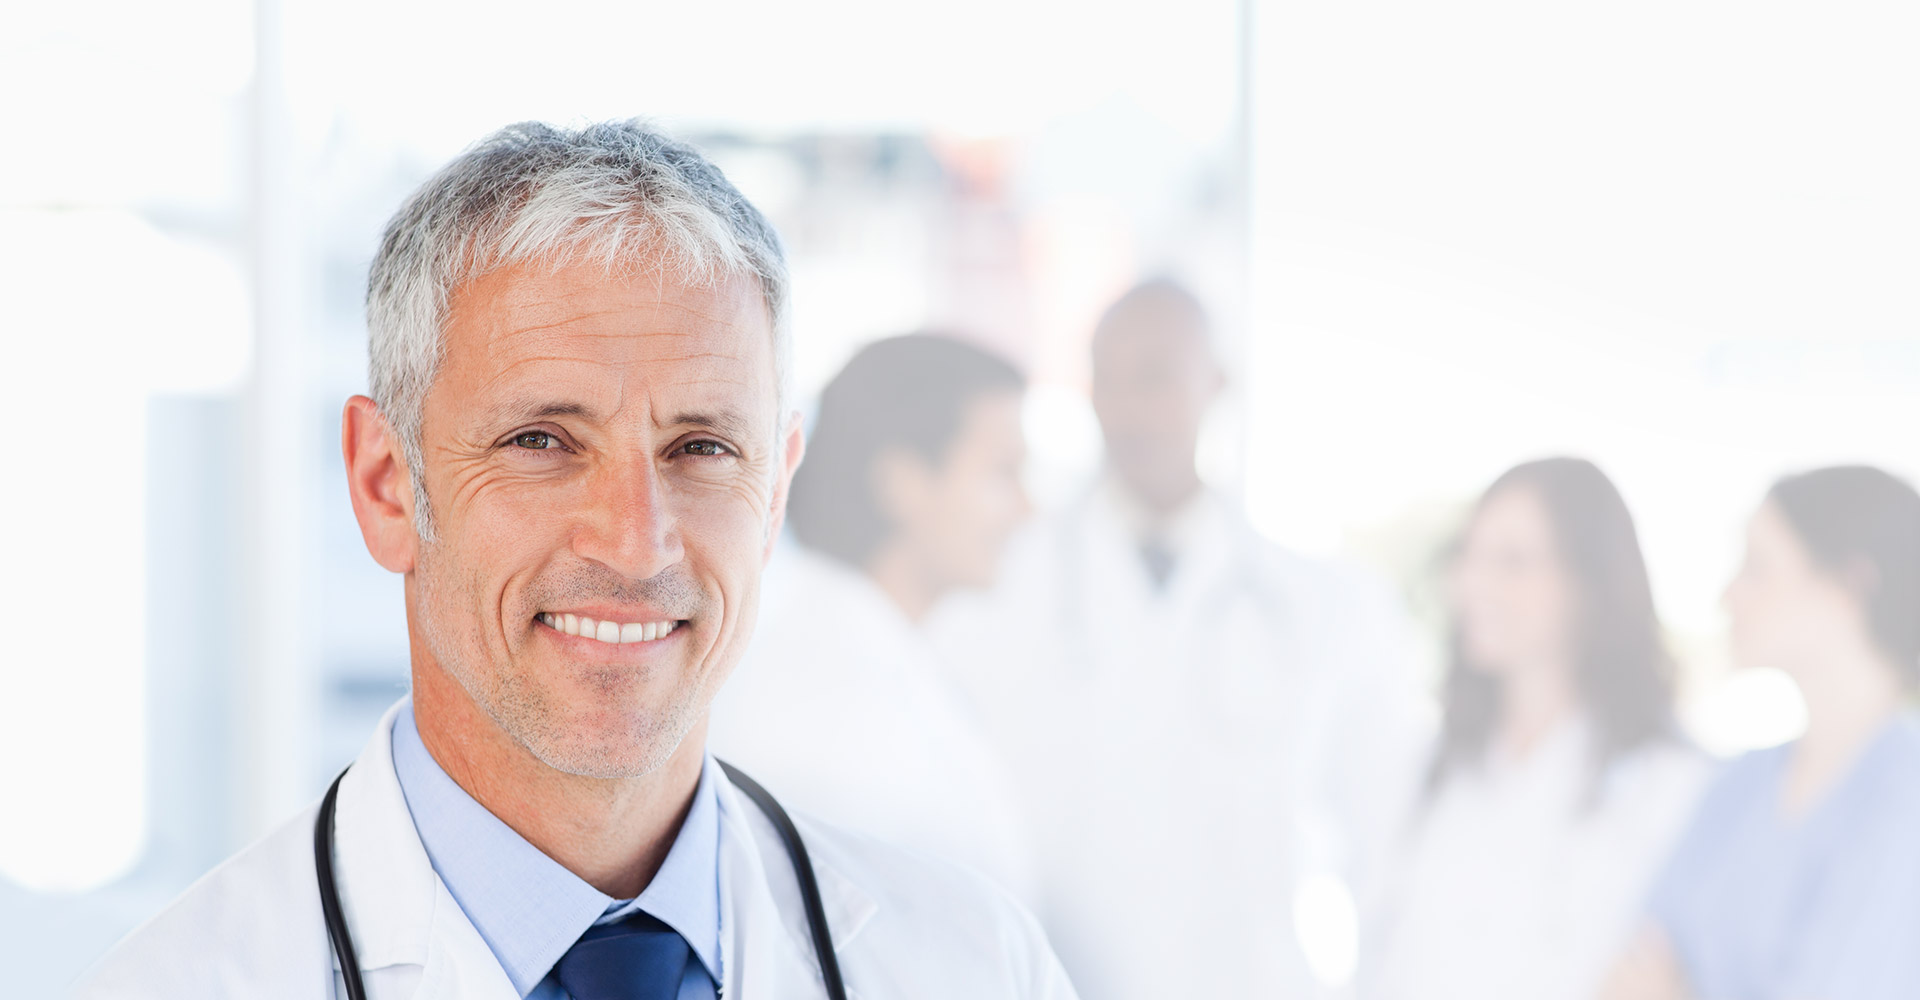 Image of doctor smiling at the camera